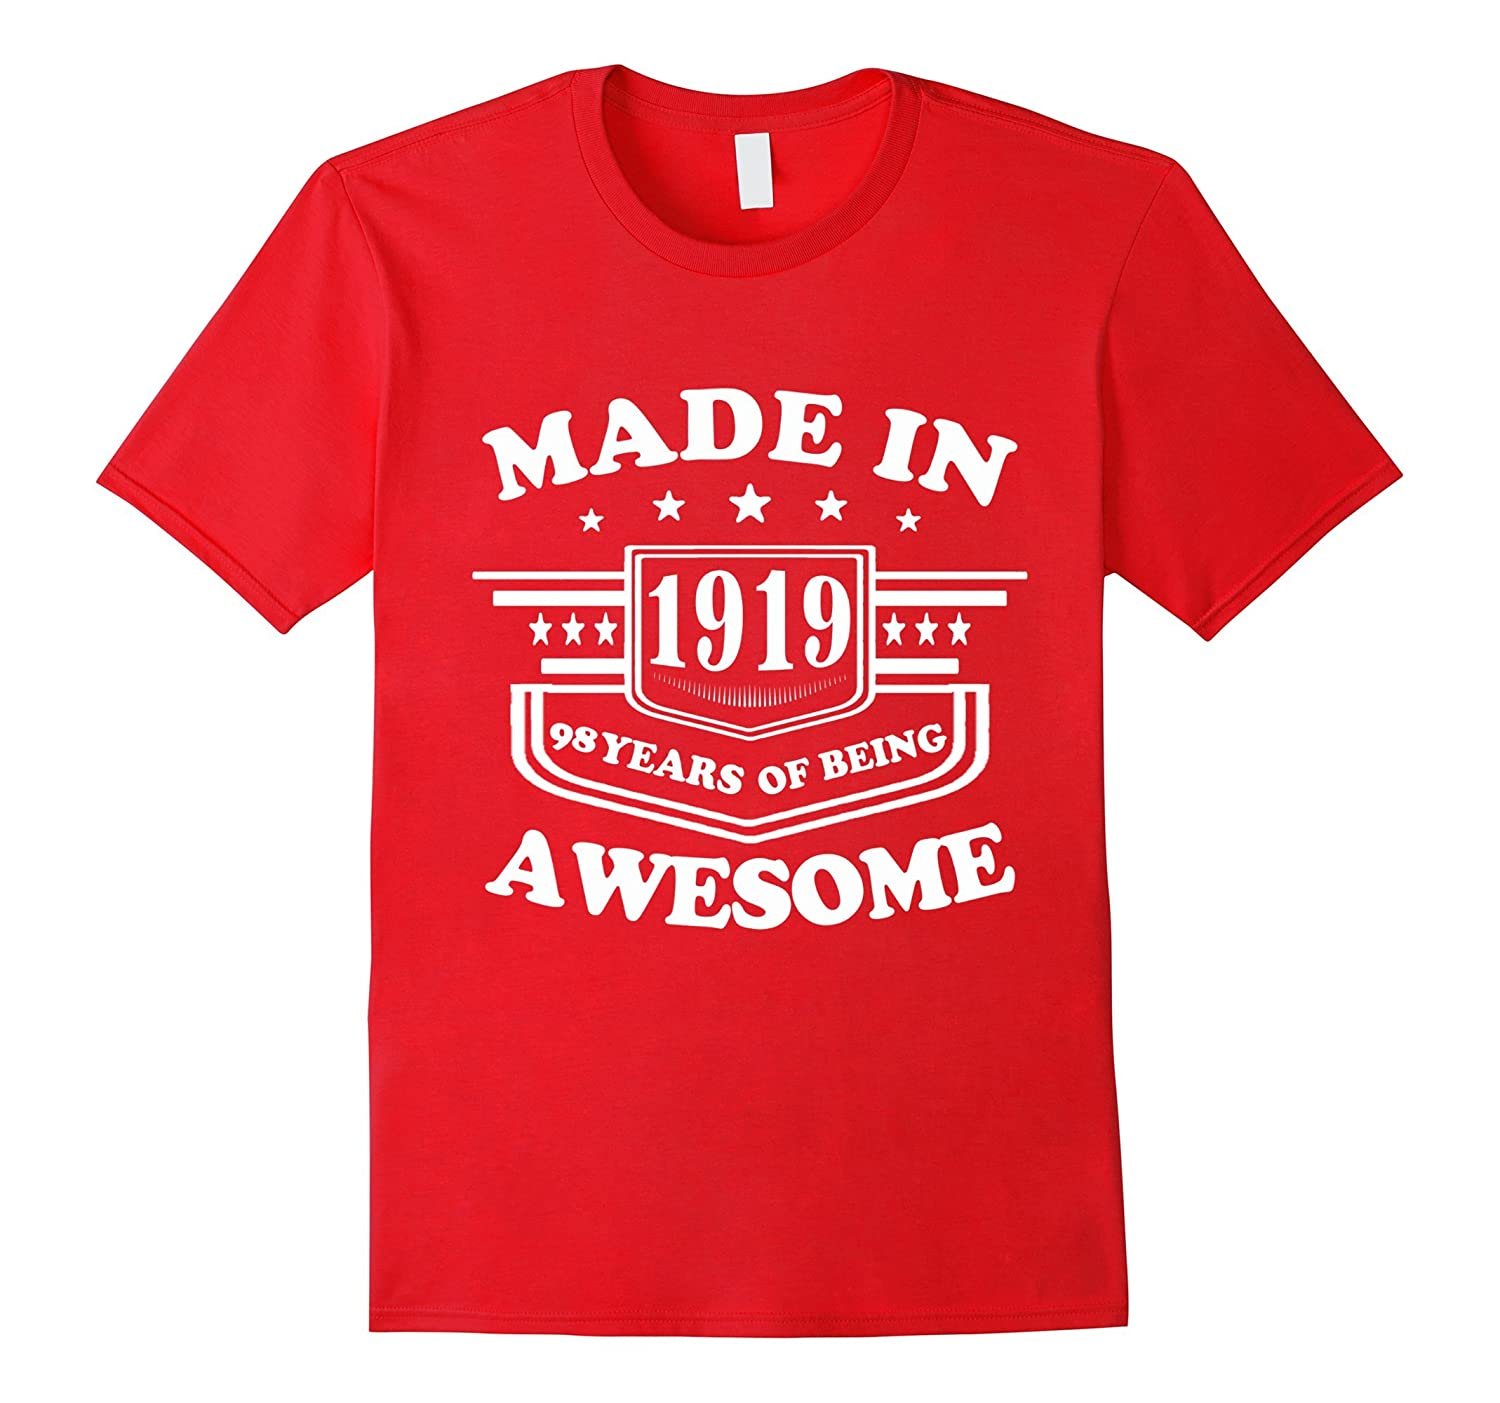 98th years Vintage Made in 1919 Gift ideas Funny T shirt-PL